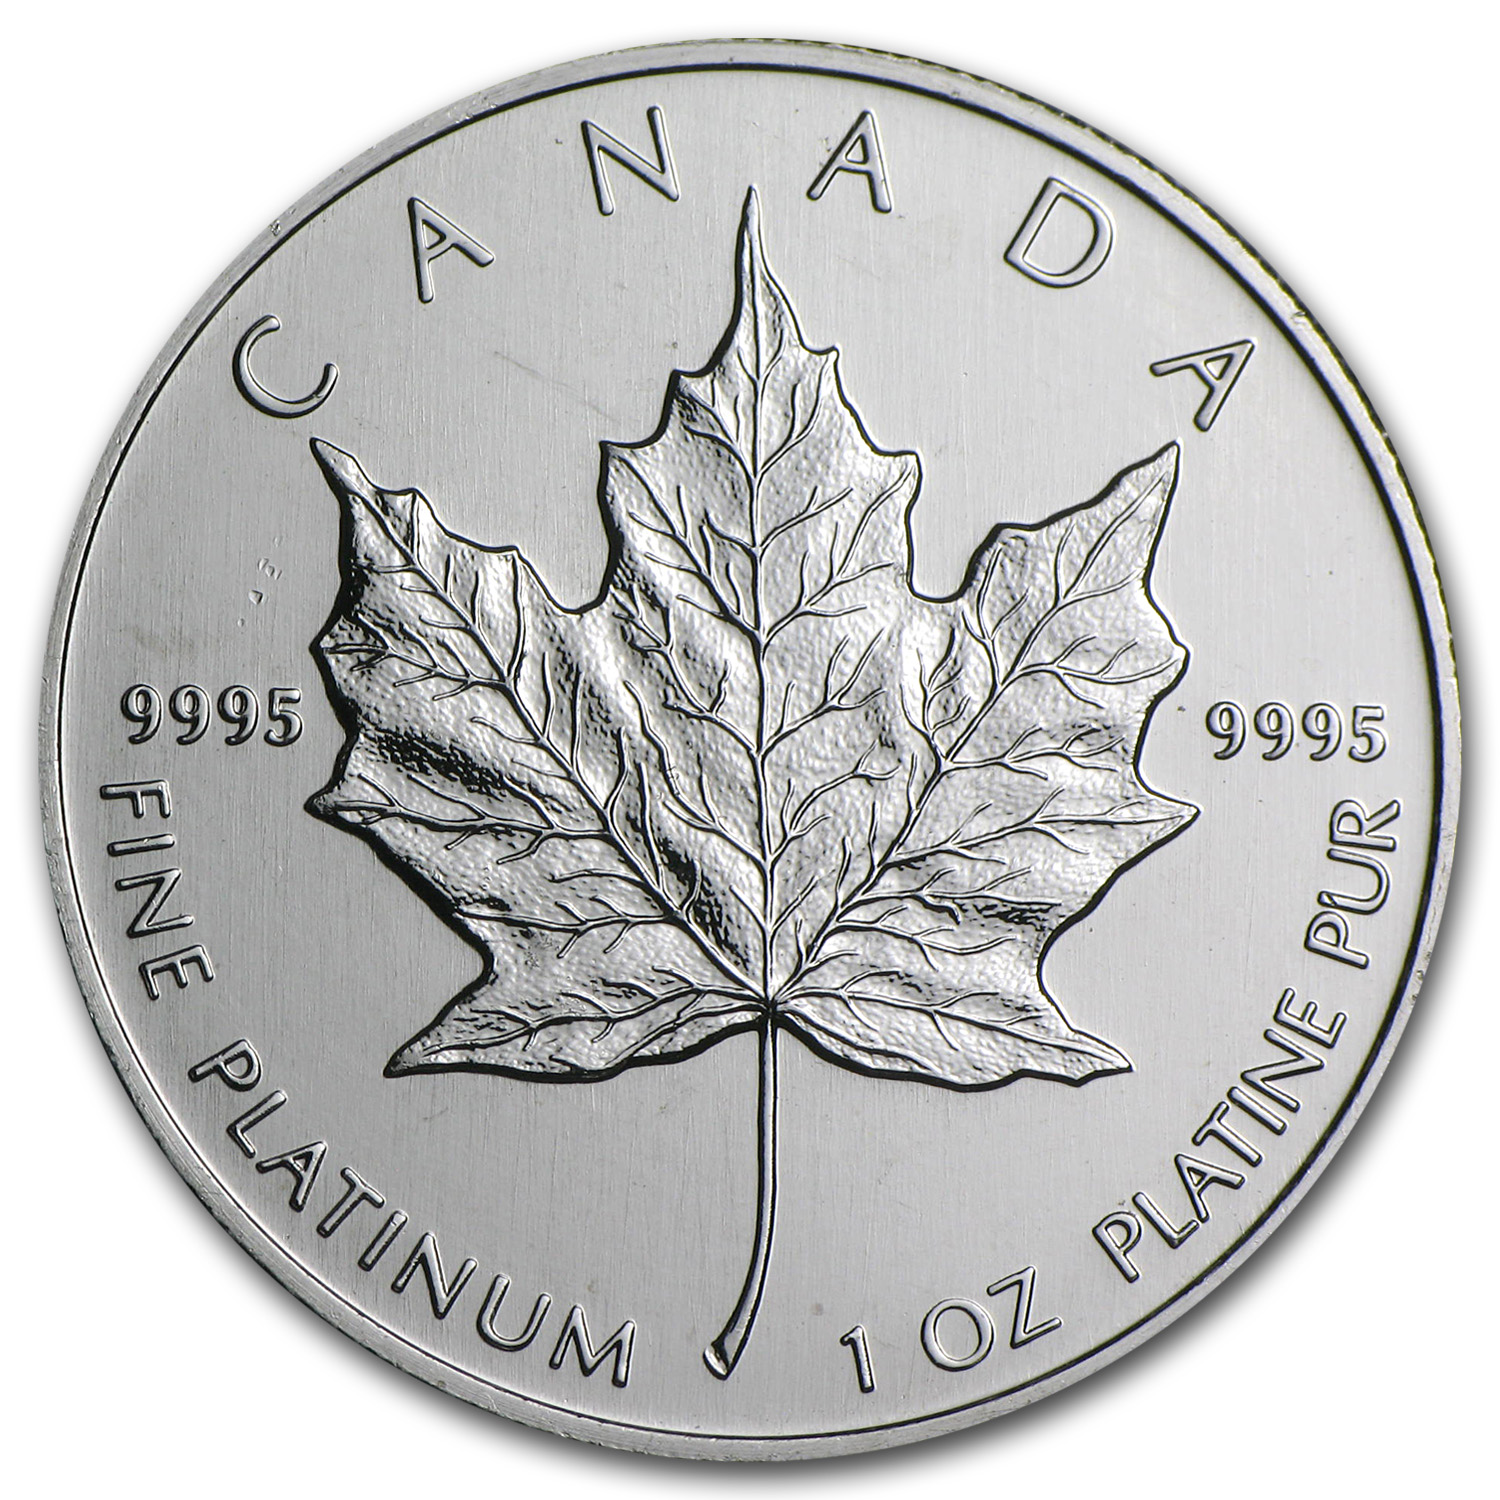 1988 Canada 1 oz Platinum Maple Leaf BU